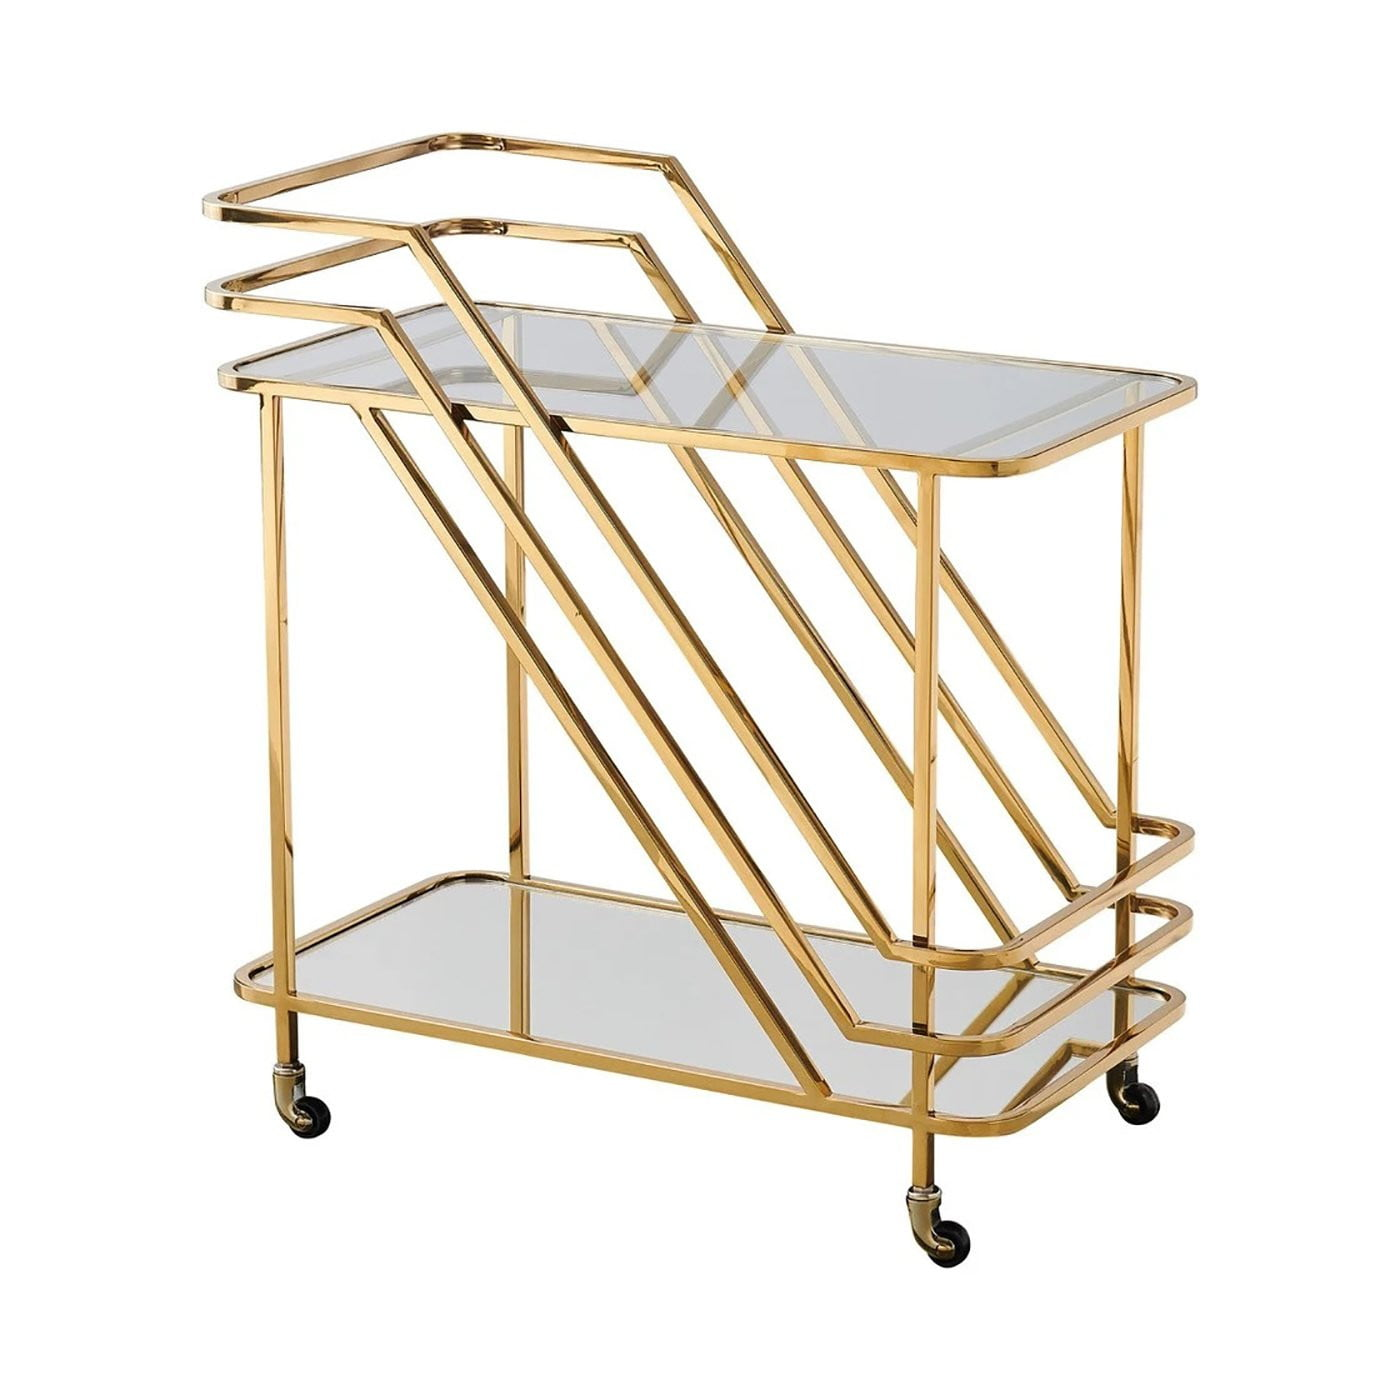 Coco Drinks Trolley Gold | Attica Luxury Furniture Sydney